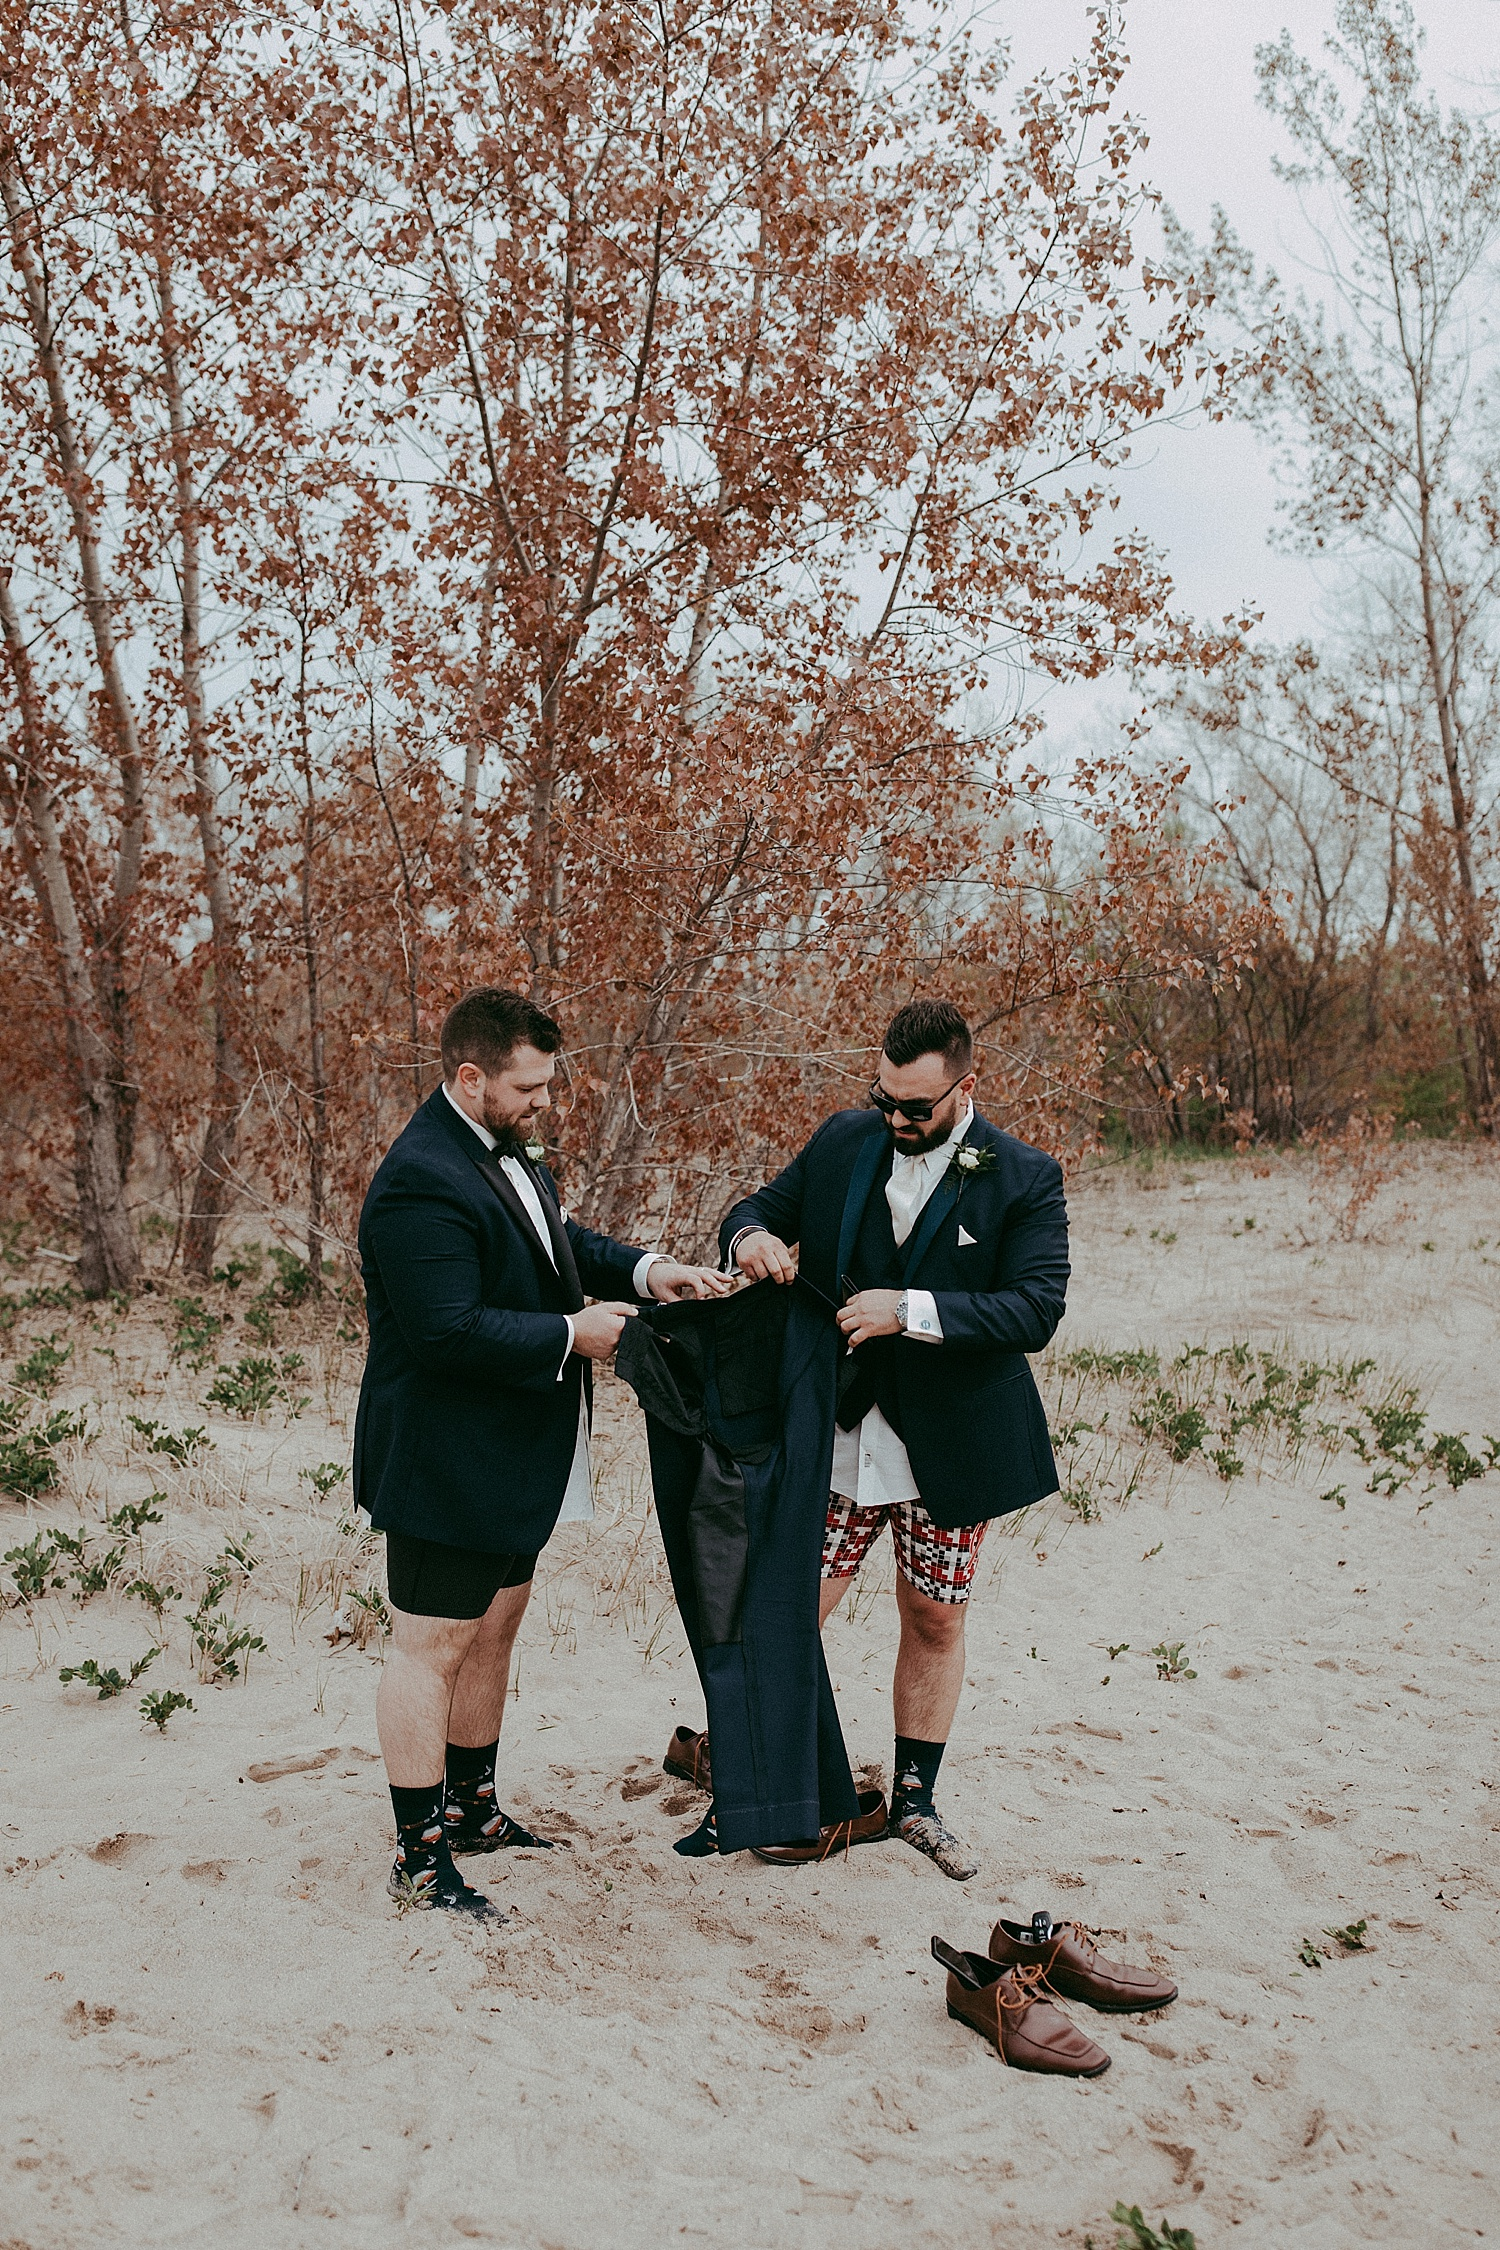 groom and groomsman holding a pair of pants, wedding photography